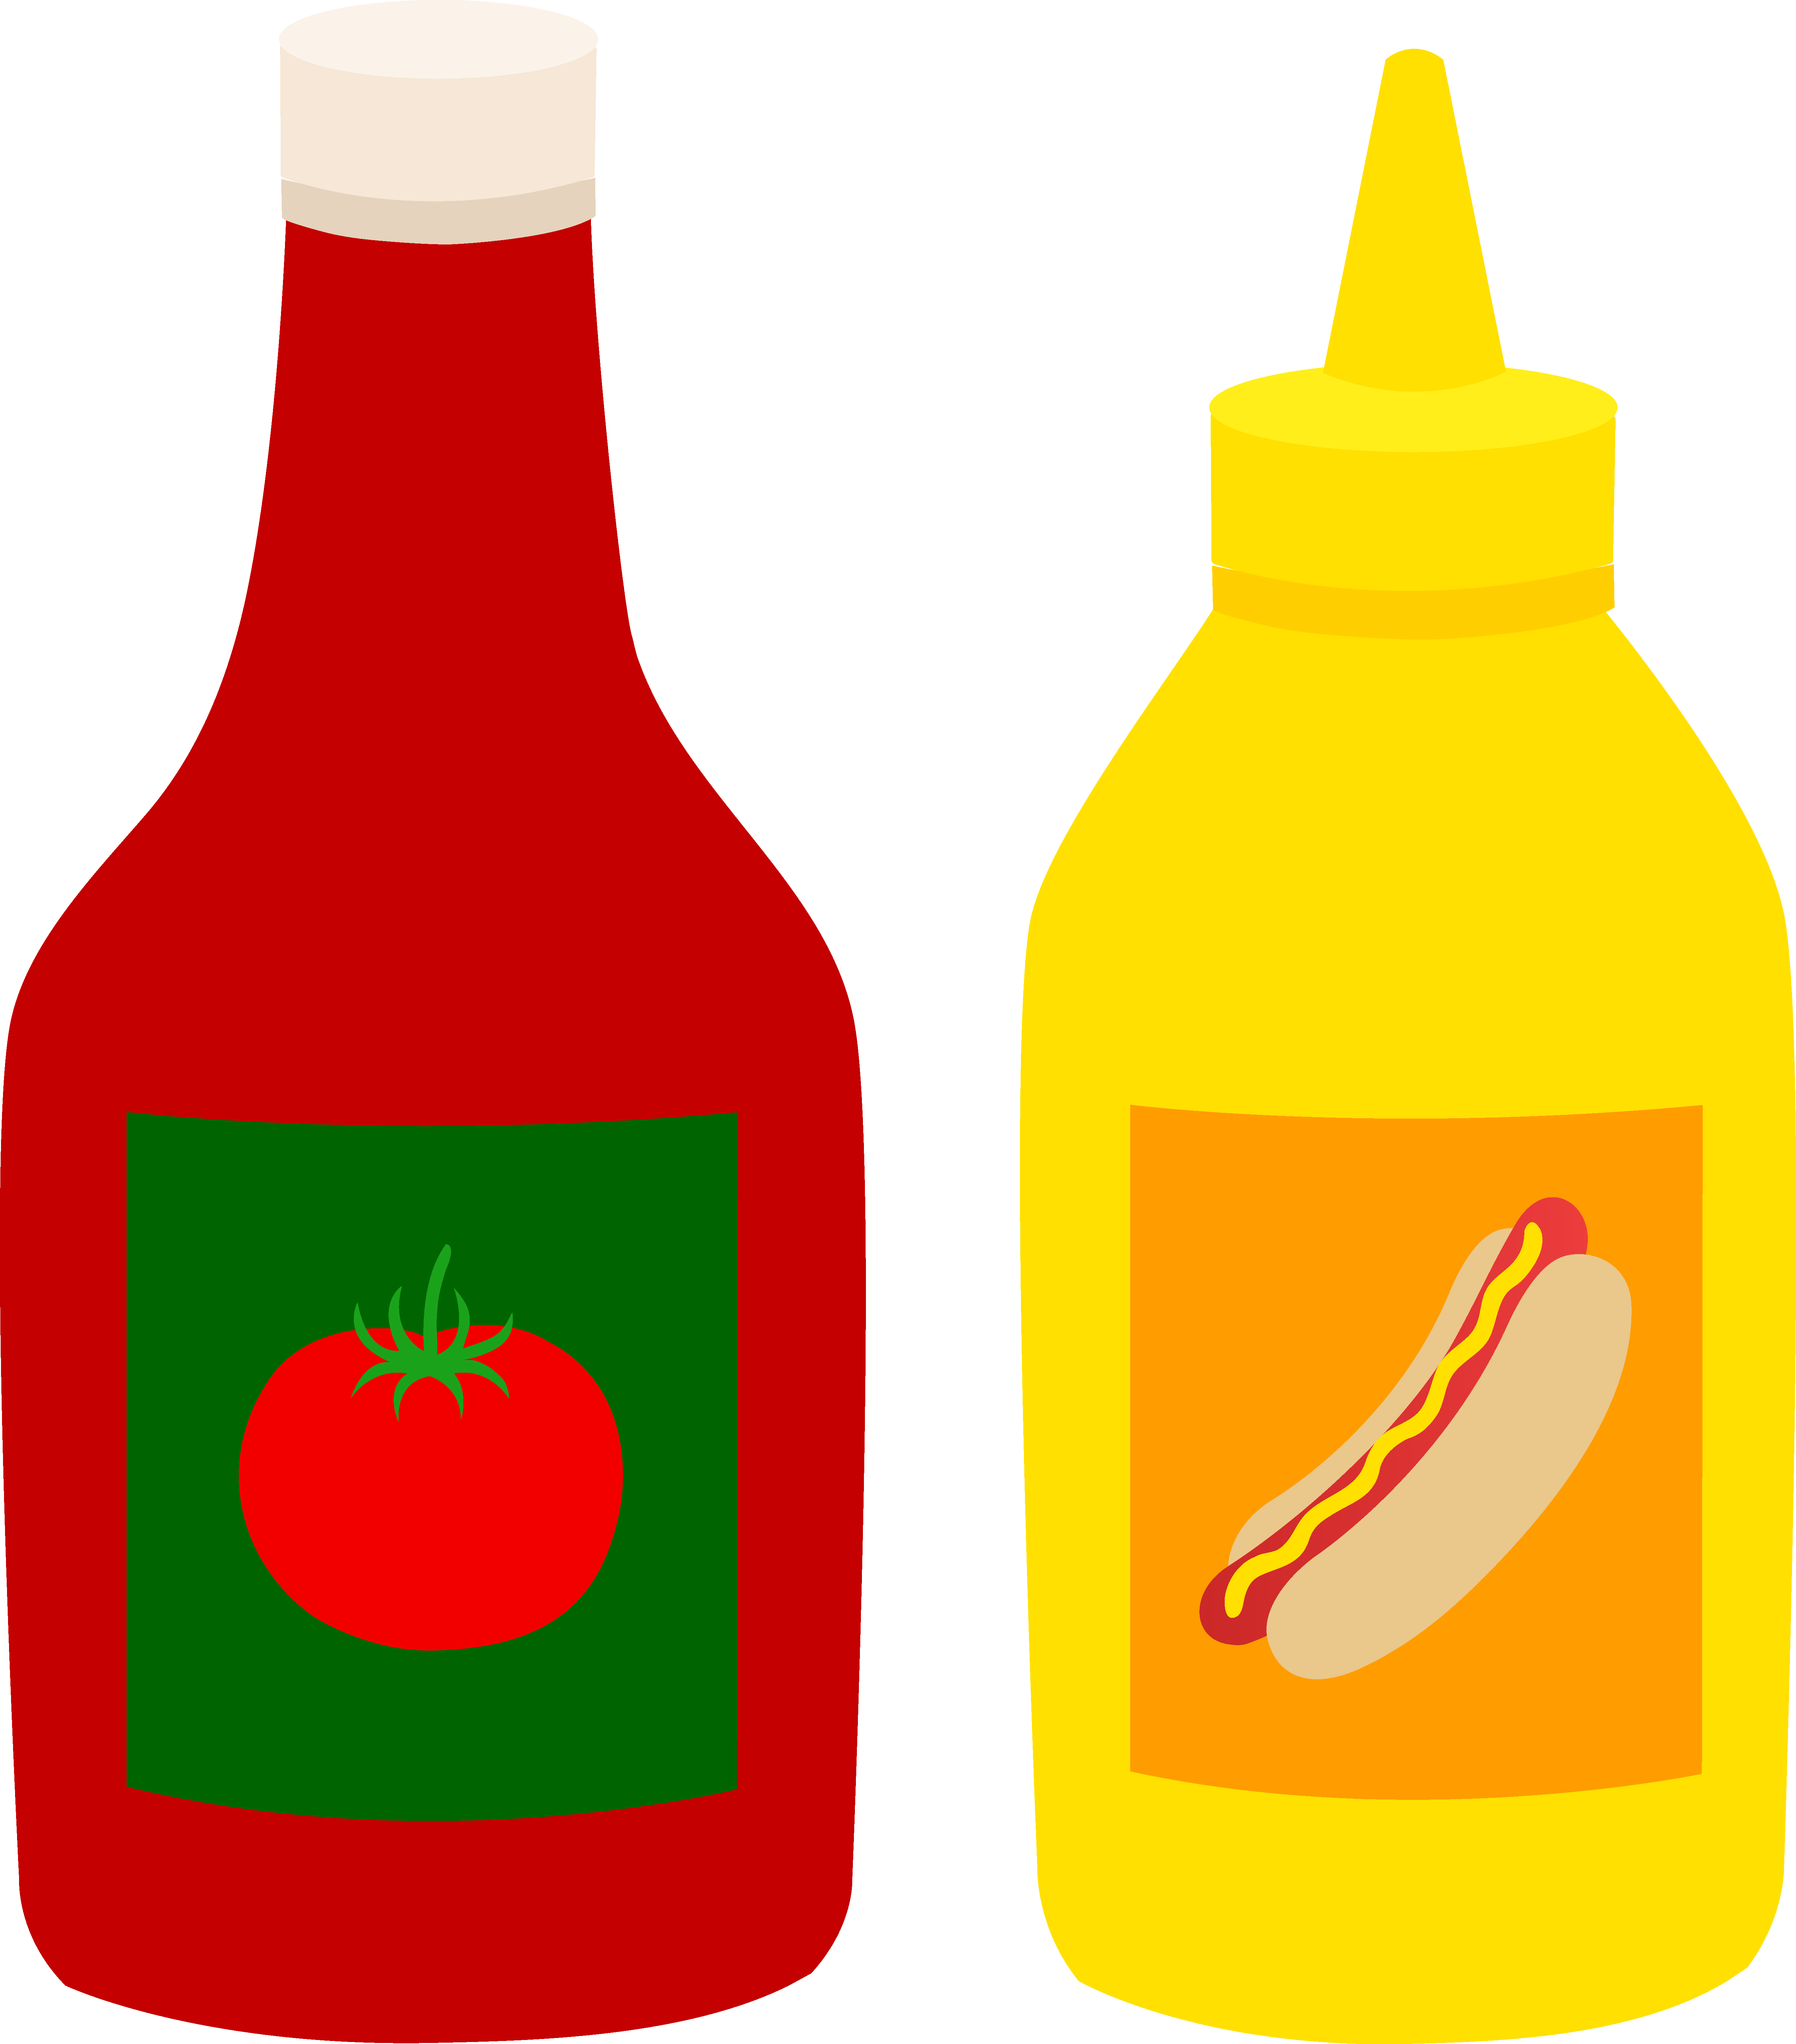 Tomatoes clipart coloring page. Sauce tomato free collection